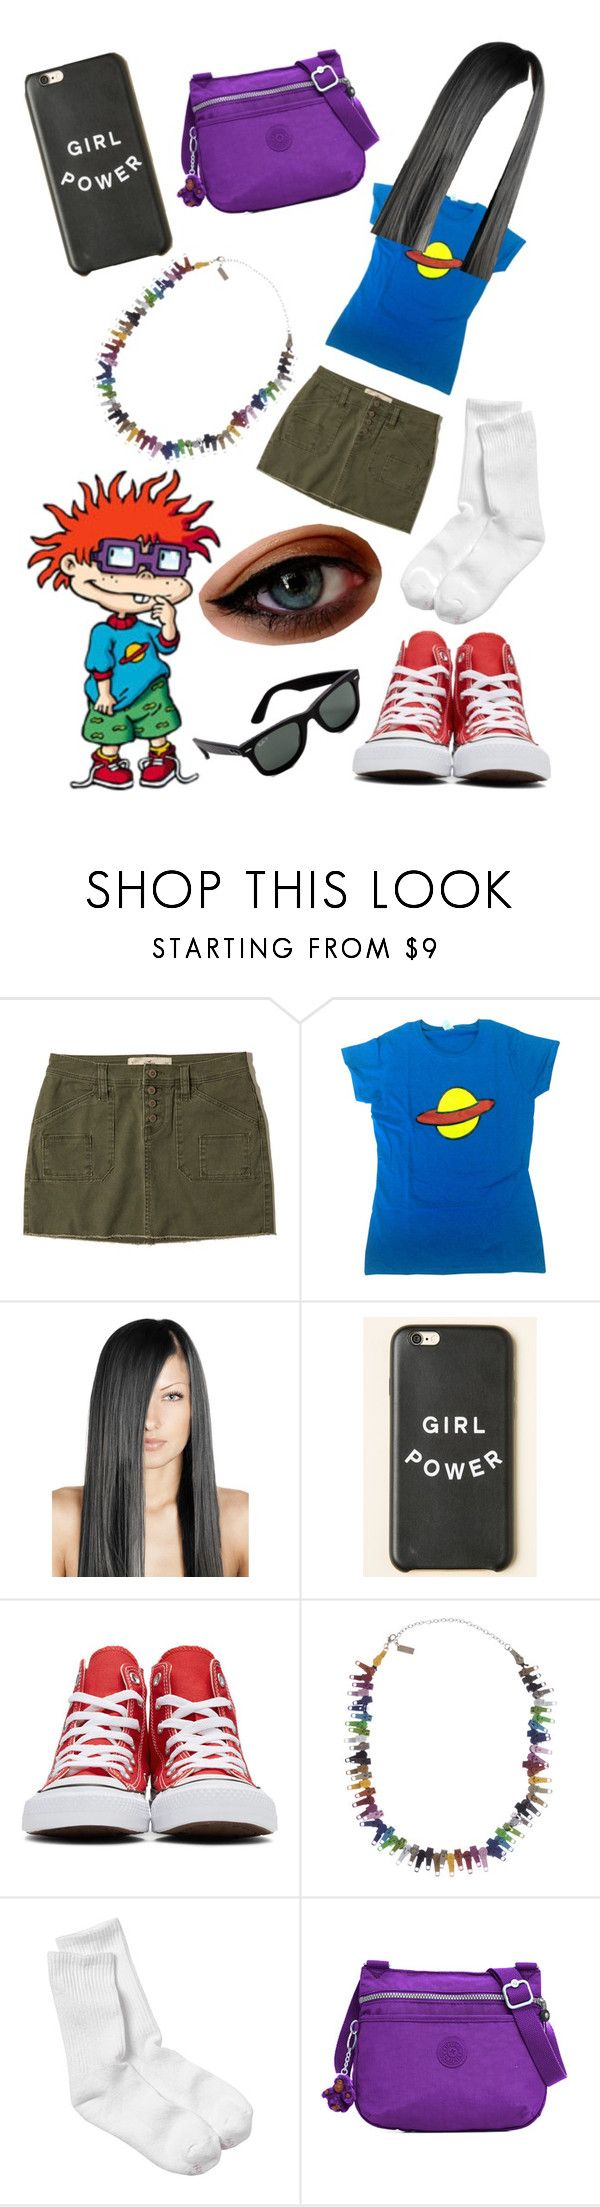 """Chuckie Finster Outfit"" by cooljen13 ❤ liked on Polyvore featuring Hollister Co., Nickelodeon, Converse, Marc Jacobs, Hanes, Kipling, Ray-Ban, rugrats and the90"